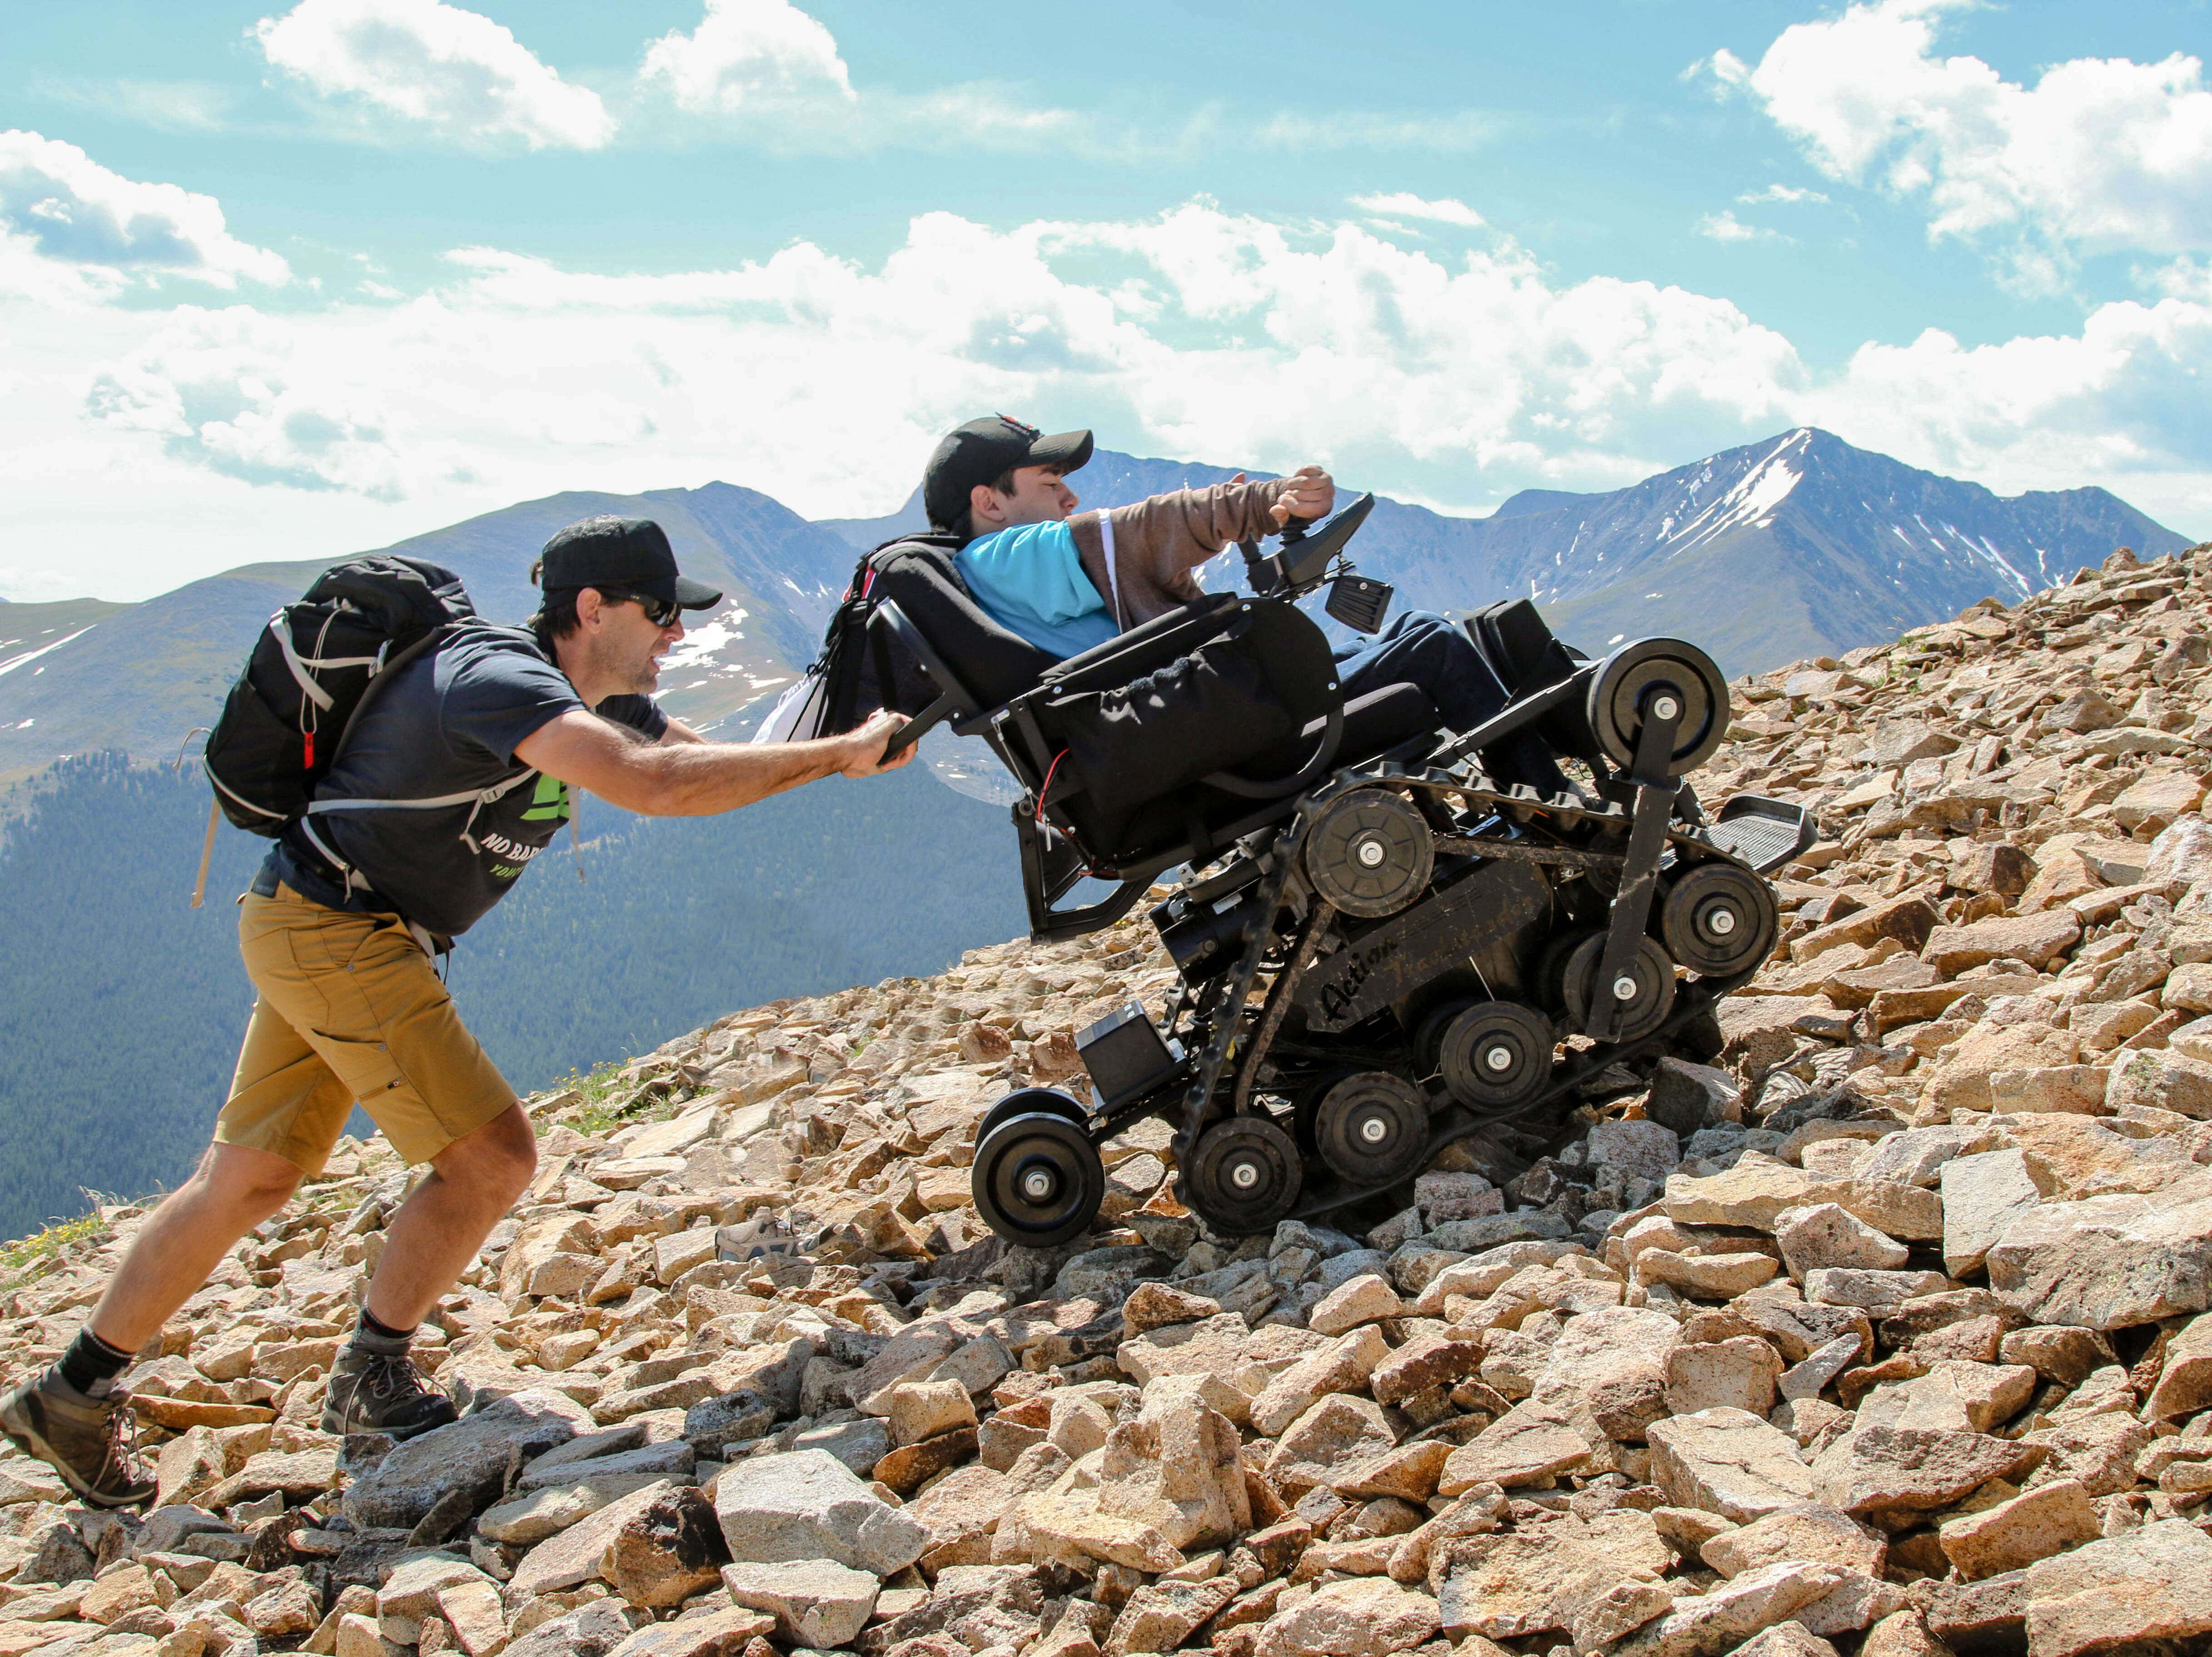 Two men hike up a rocky slope. One is using an electric wheelchair with tank-like treds, the other is helping to push the chair up the hill. There are mountains and a blue sky in the background.